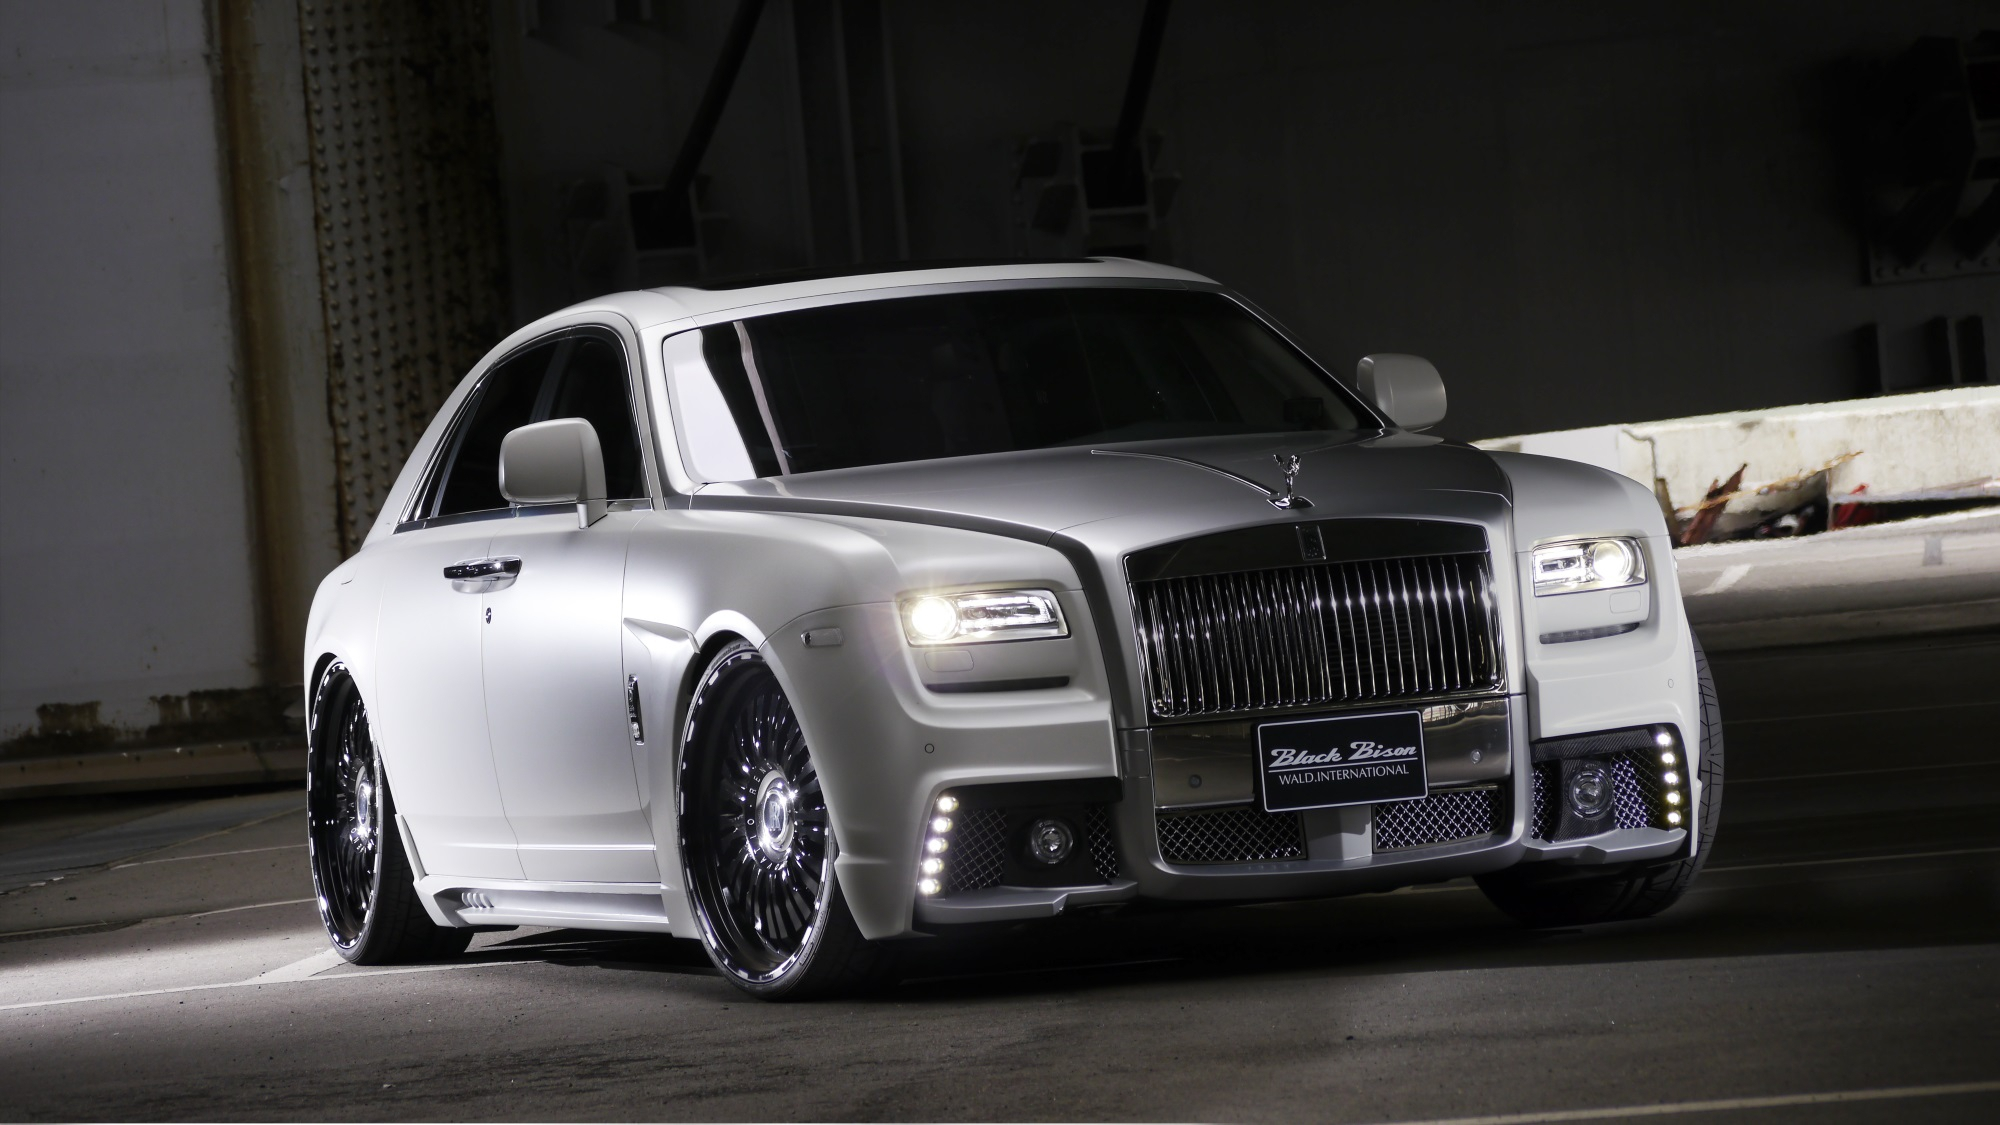 rolls royce ghost wallpapers images photos pictures backgrounds. Black Bedroom Furniture Sets. Home Design Ideas